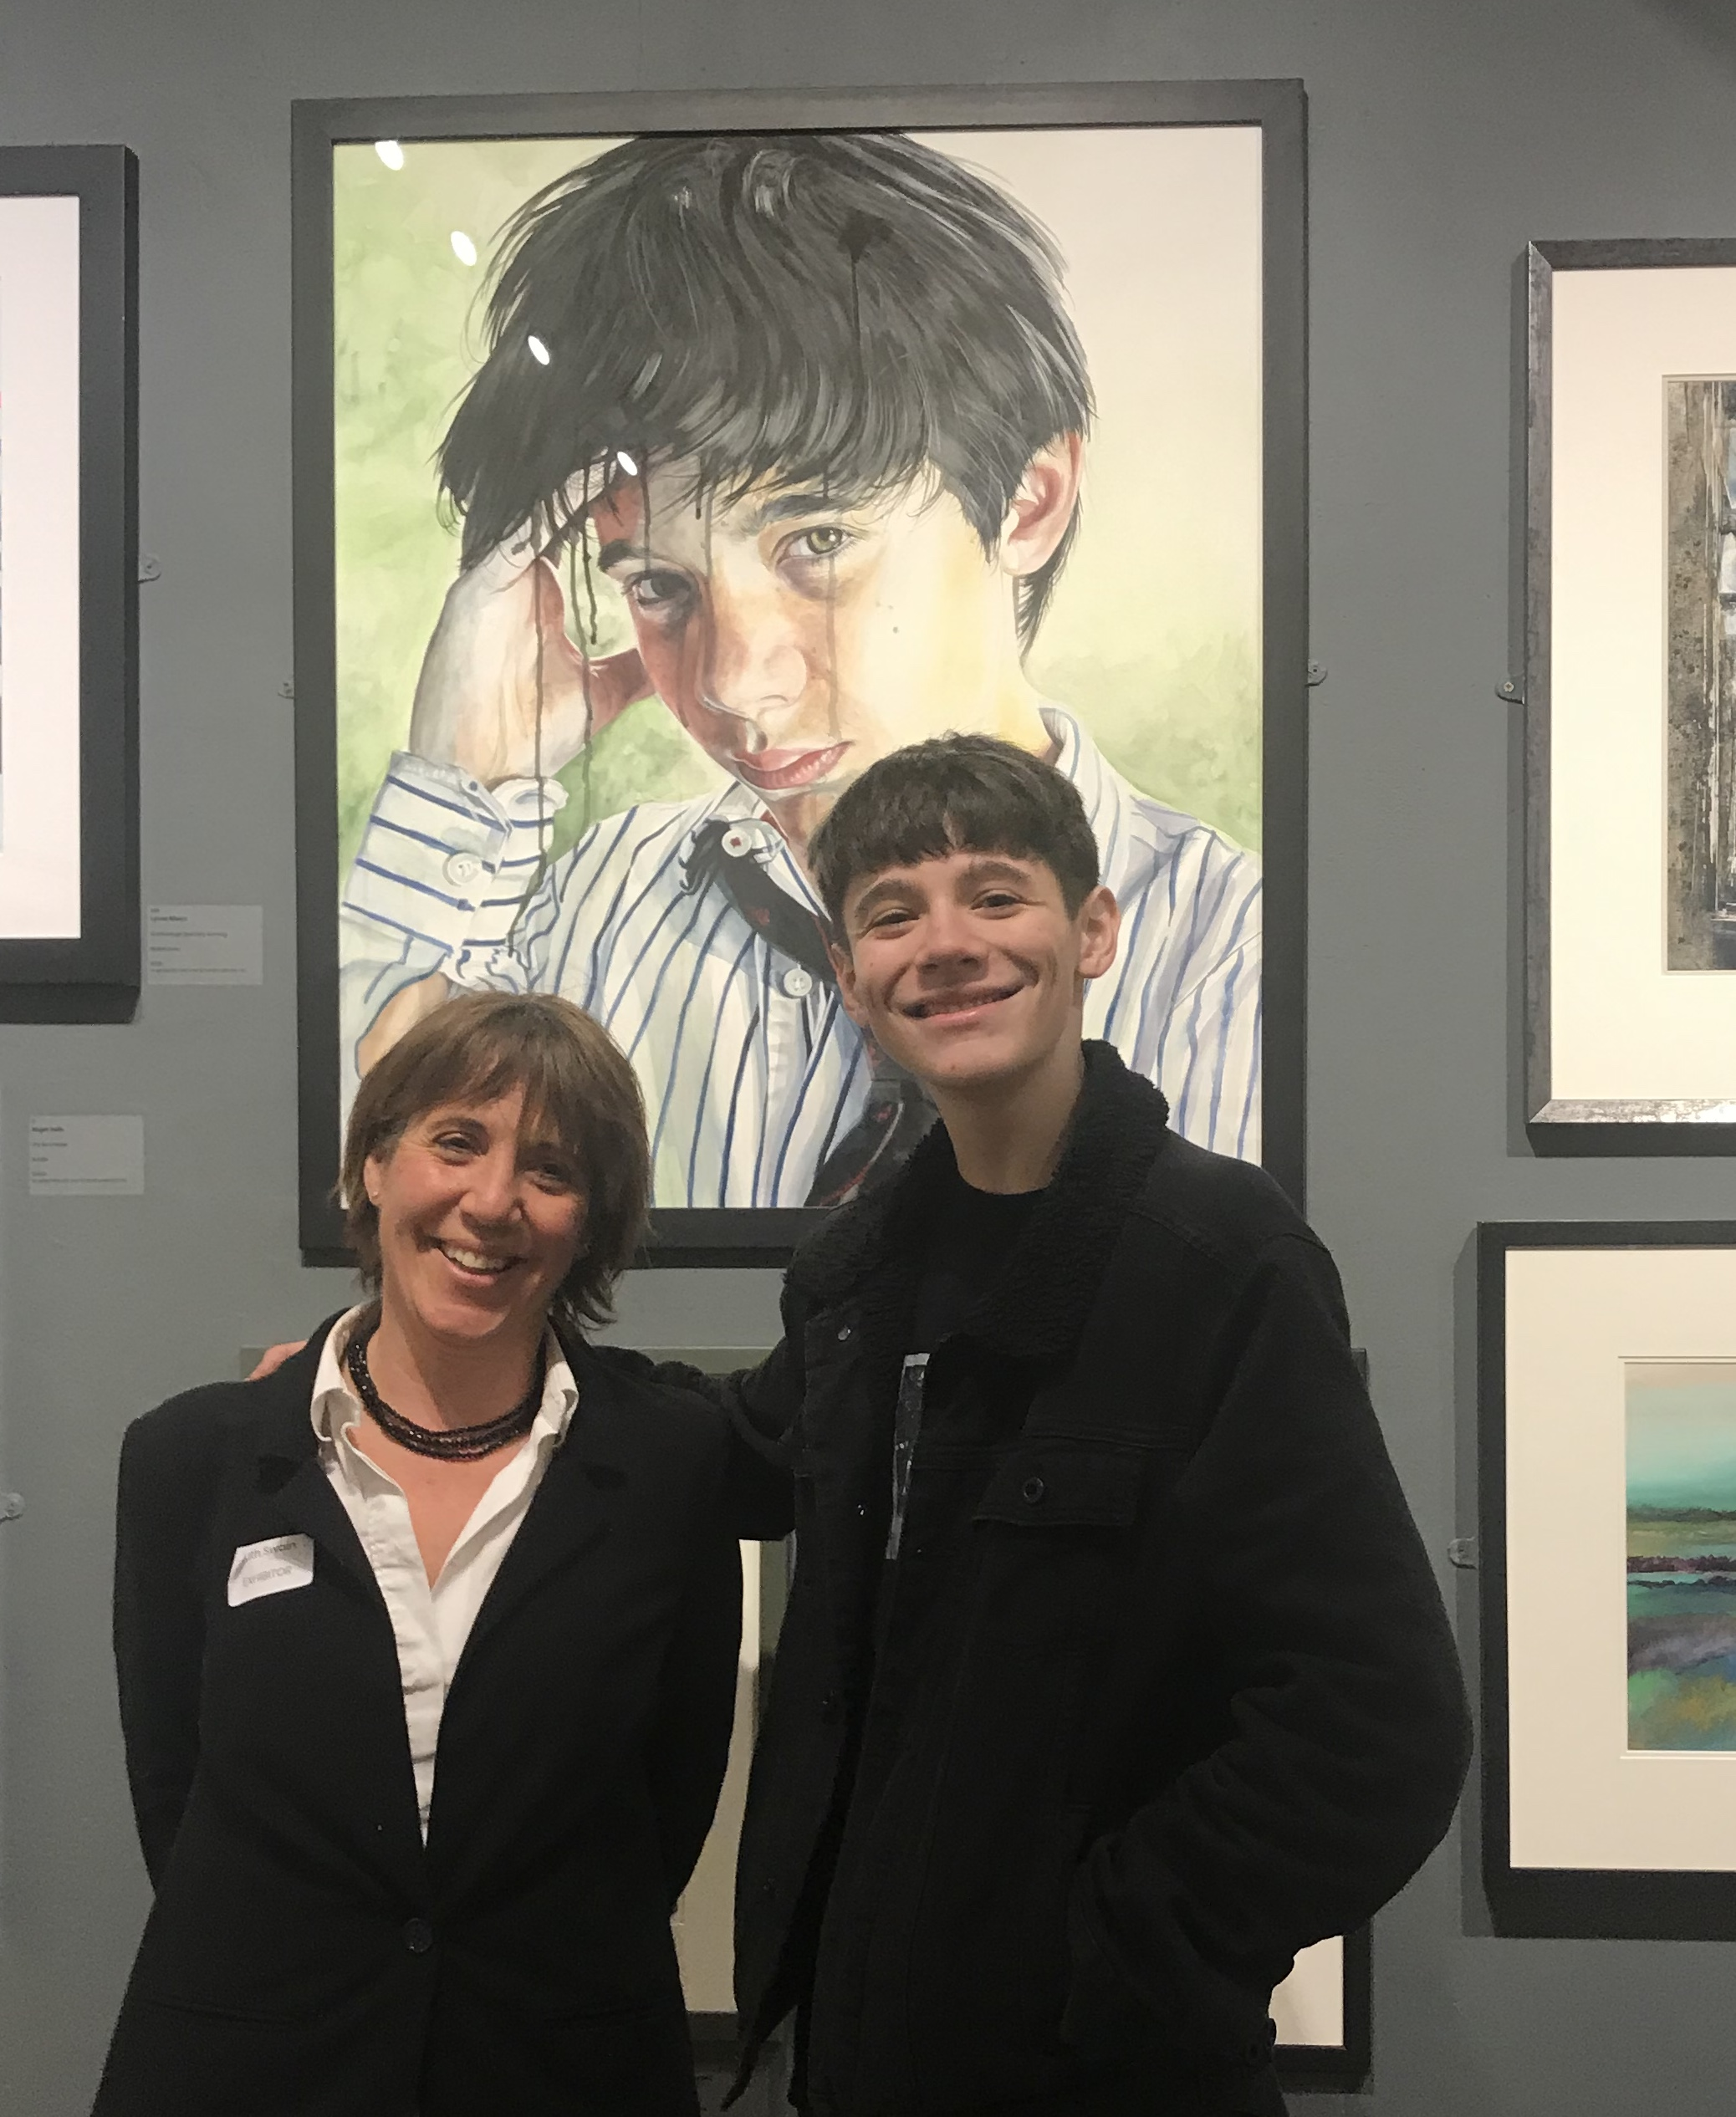 Me and Dom, (my son) in front of my painting at the Royal Institute of Painters in Watercolours 208th Exhibition 2018